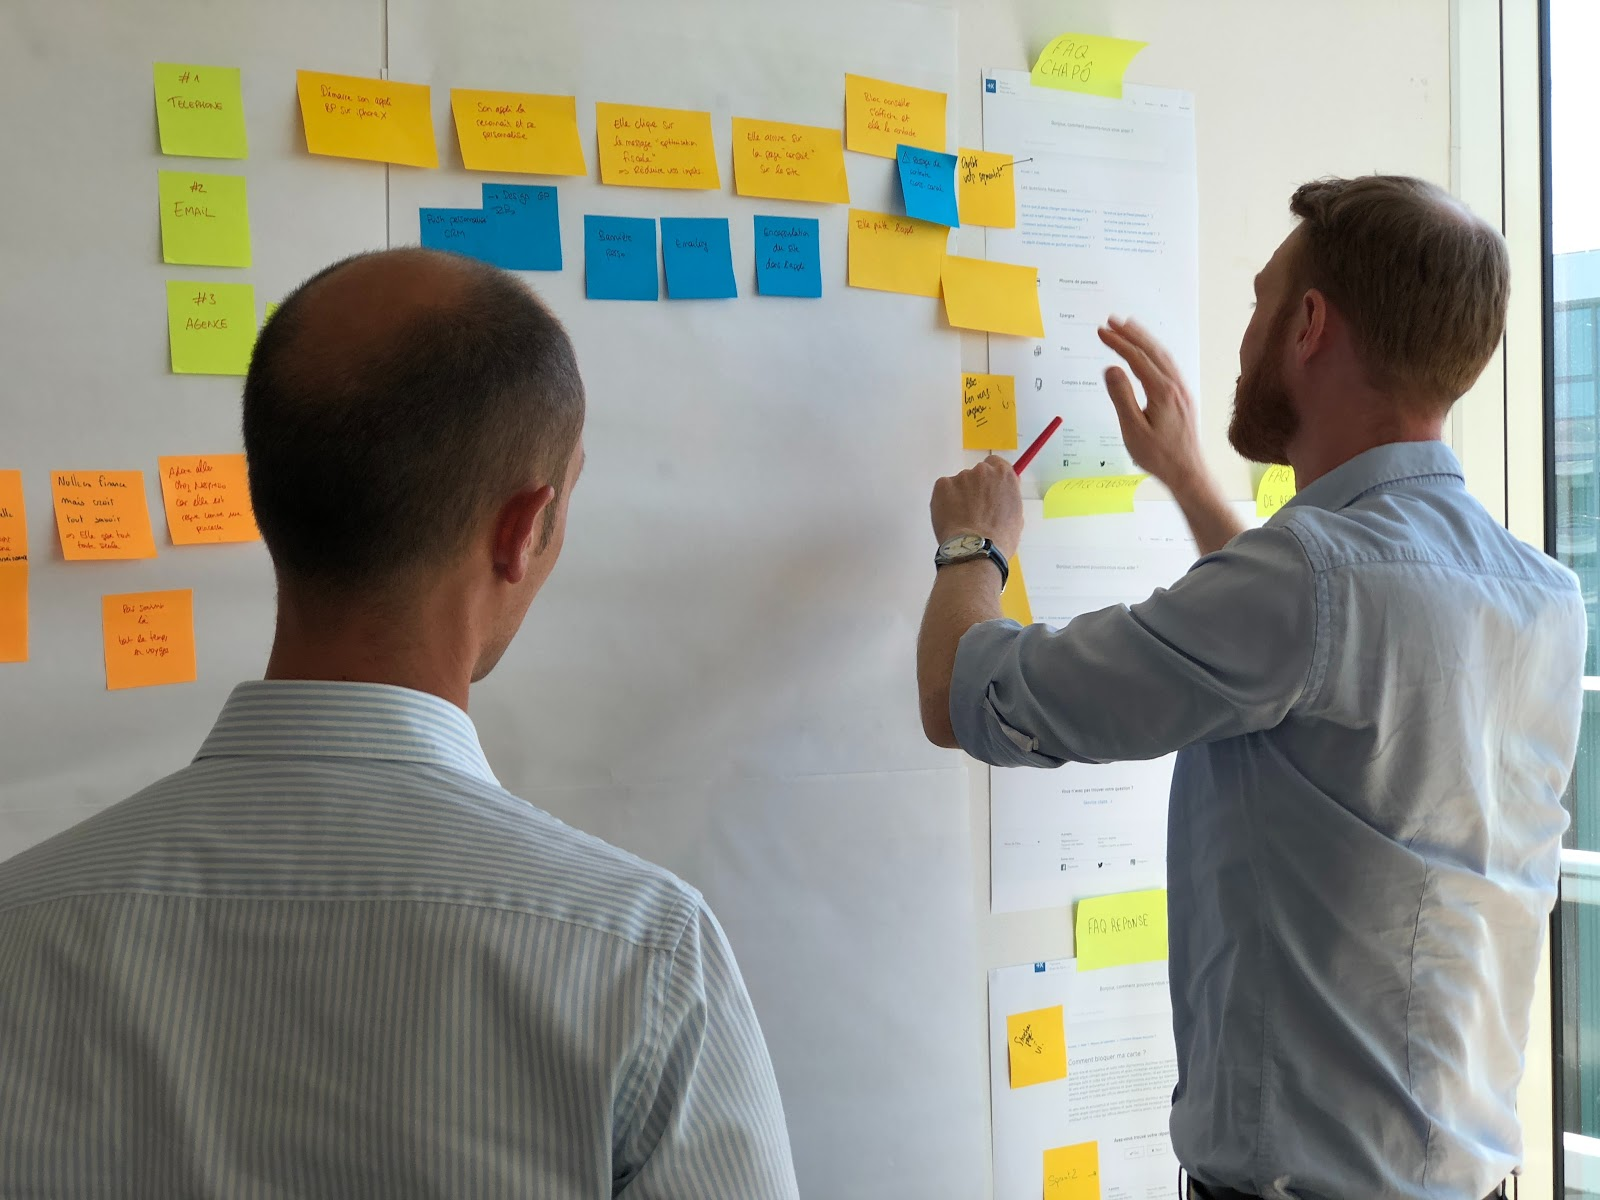 Two men discussing sticky notes on a board.